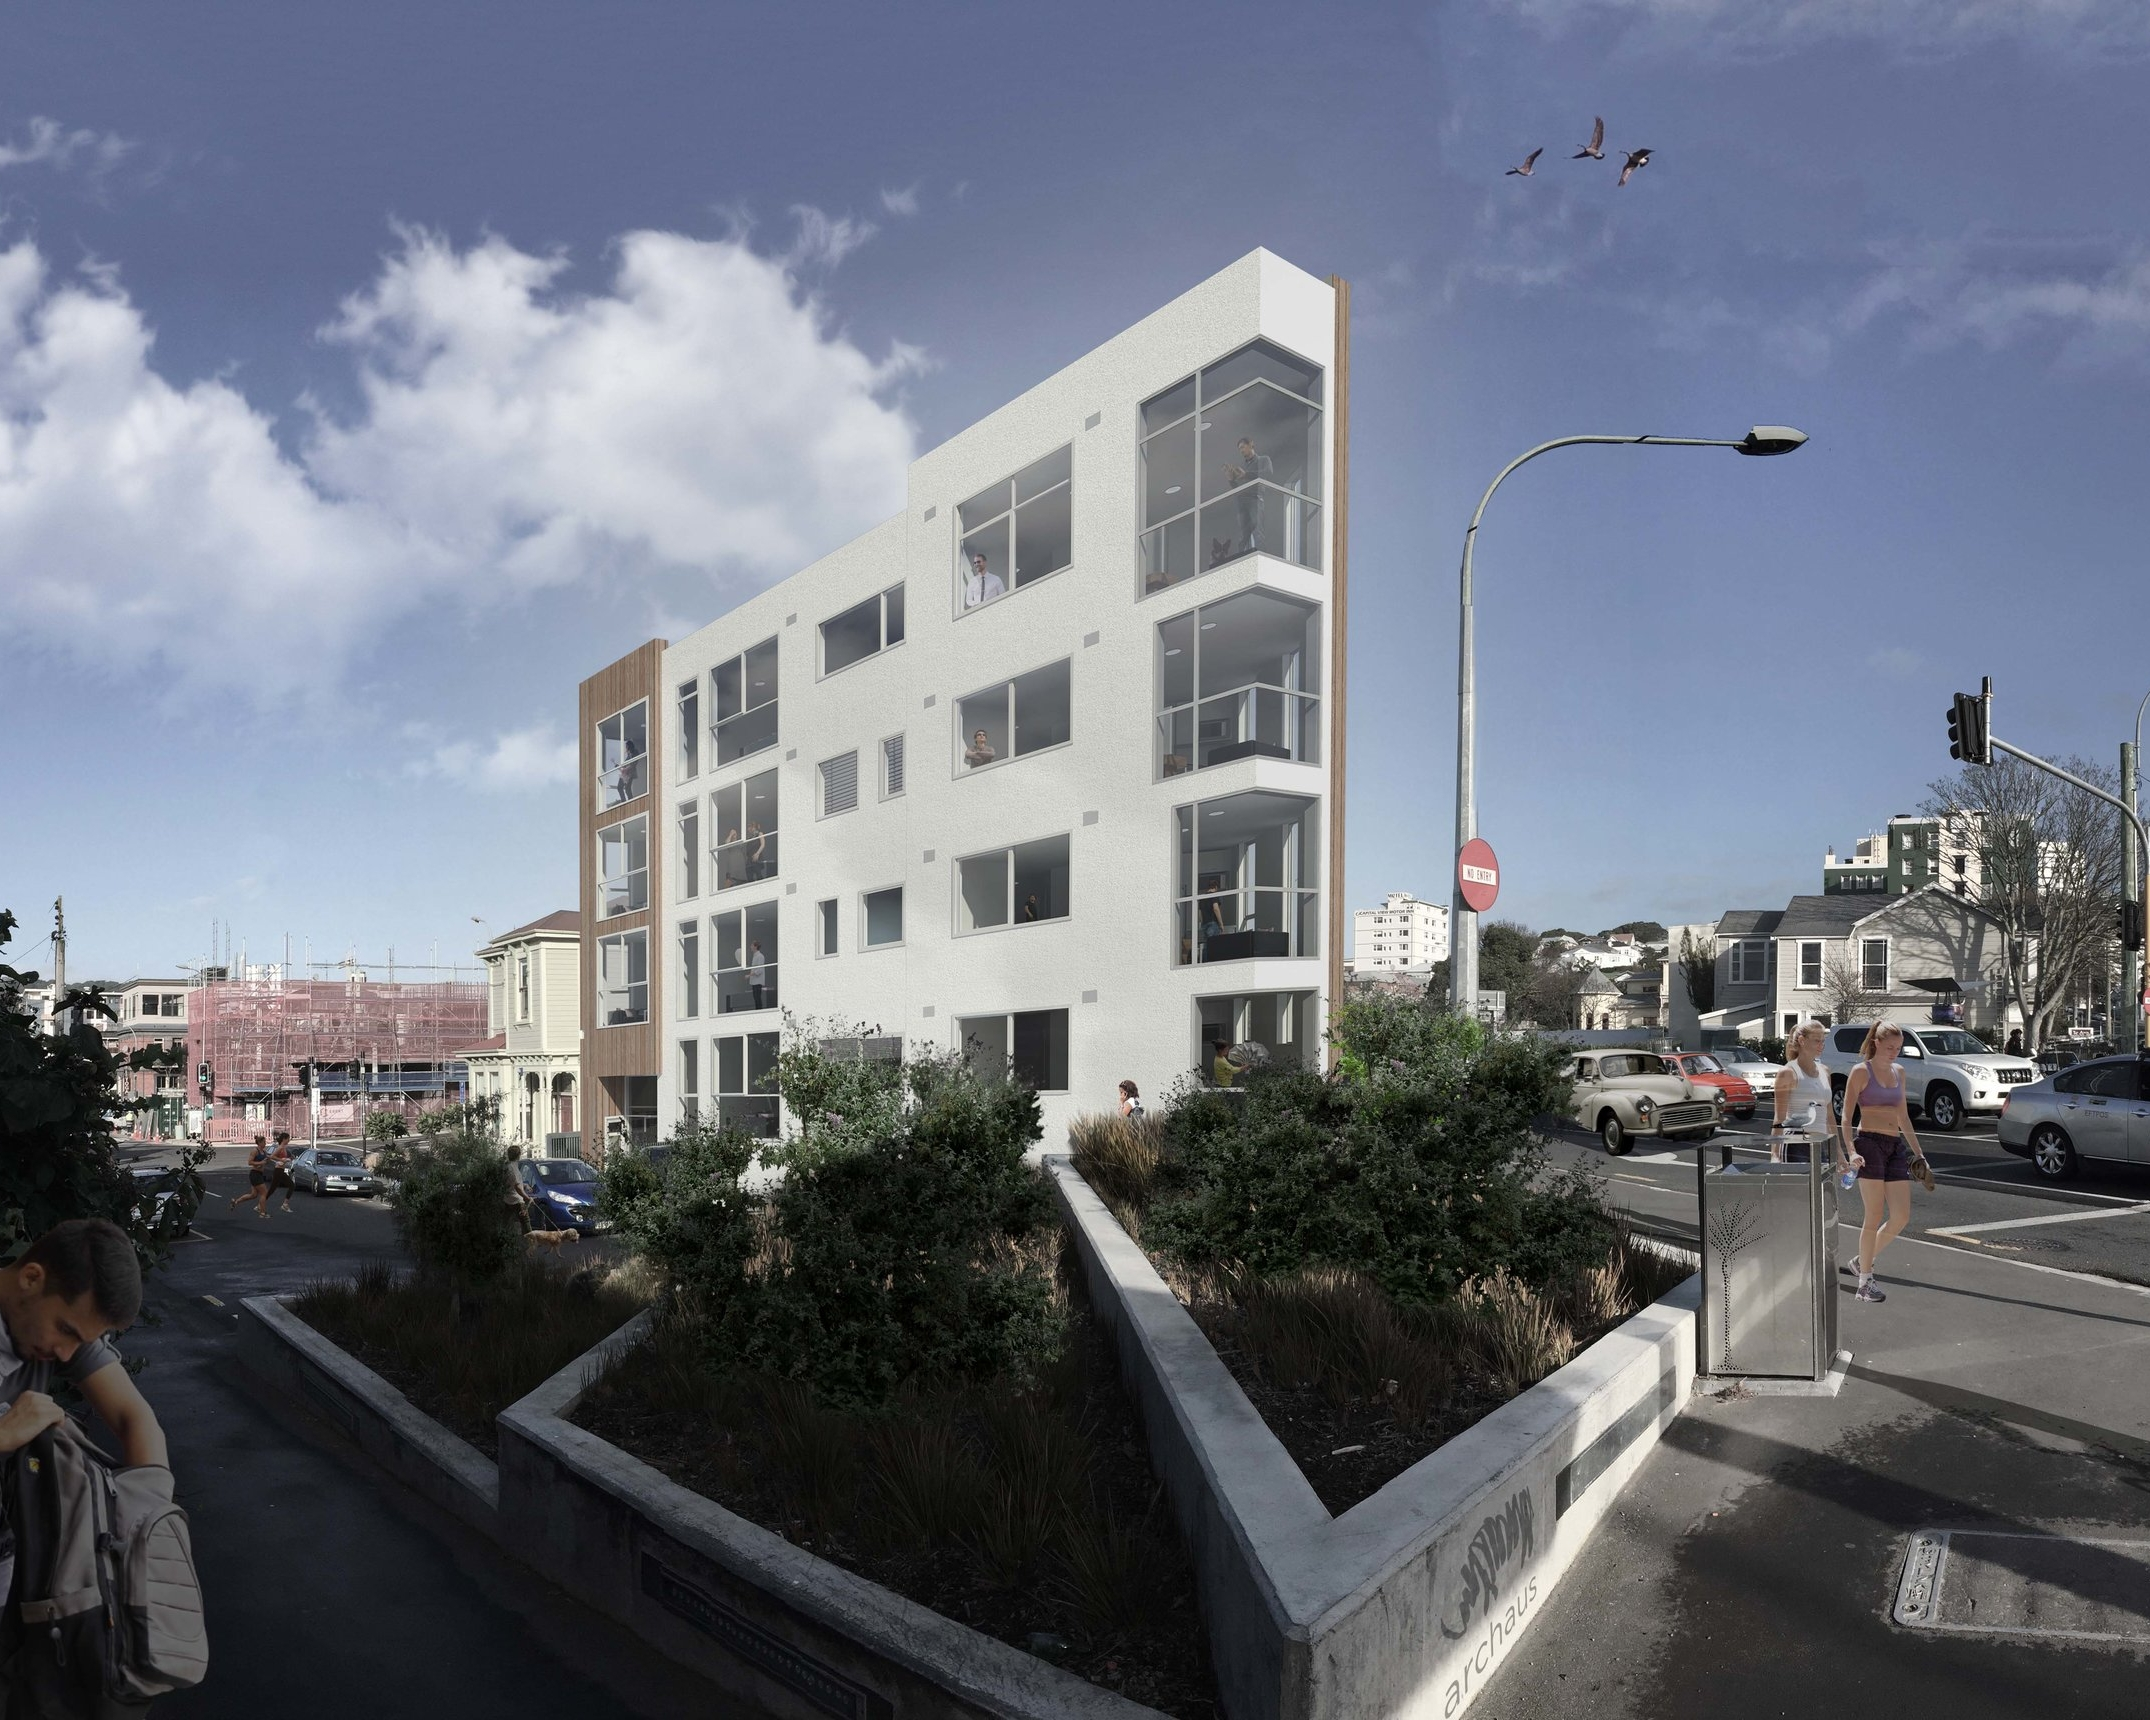 83 ABEL SMITH STREET BY ARCHAUS. PHOTOGRAPHY BY ANDY SPAIN. ABEL SMITH STREET X WILLIS STREET RENDER